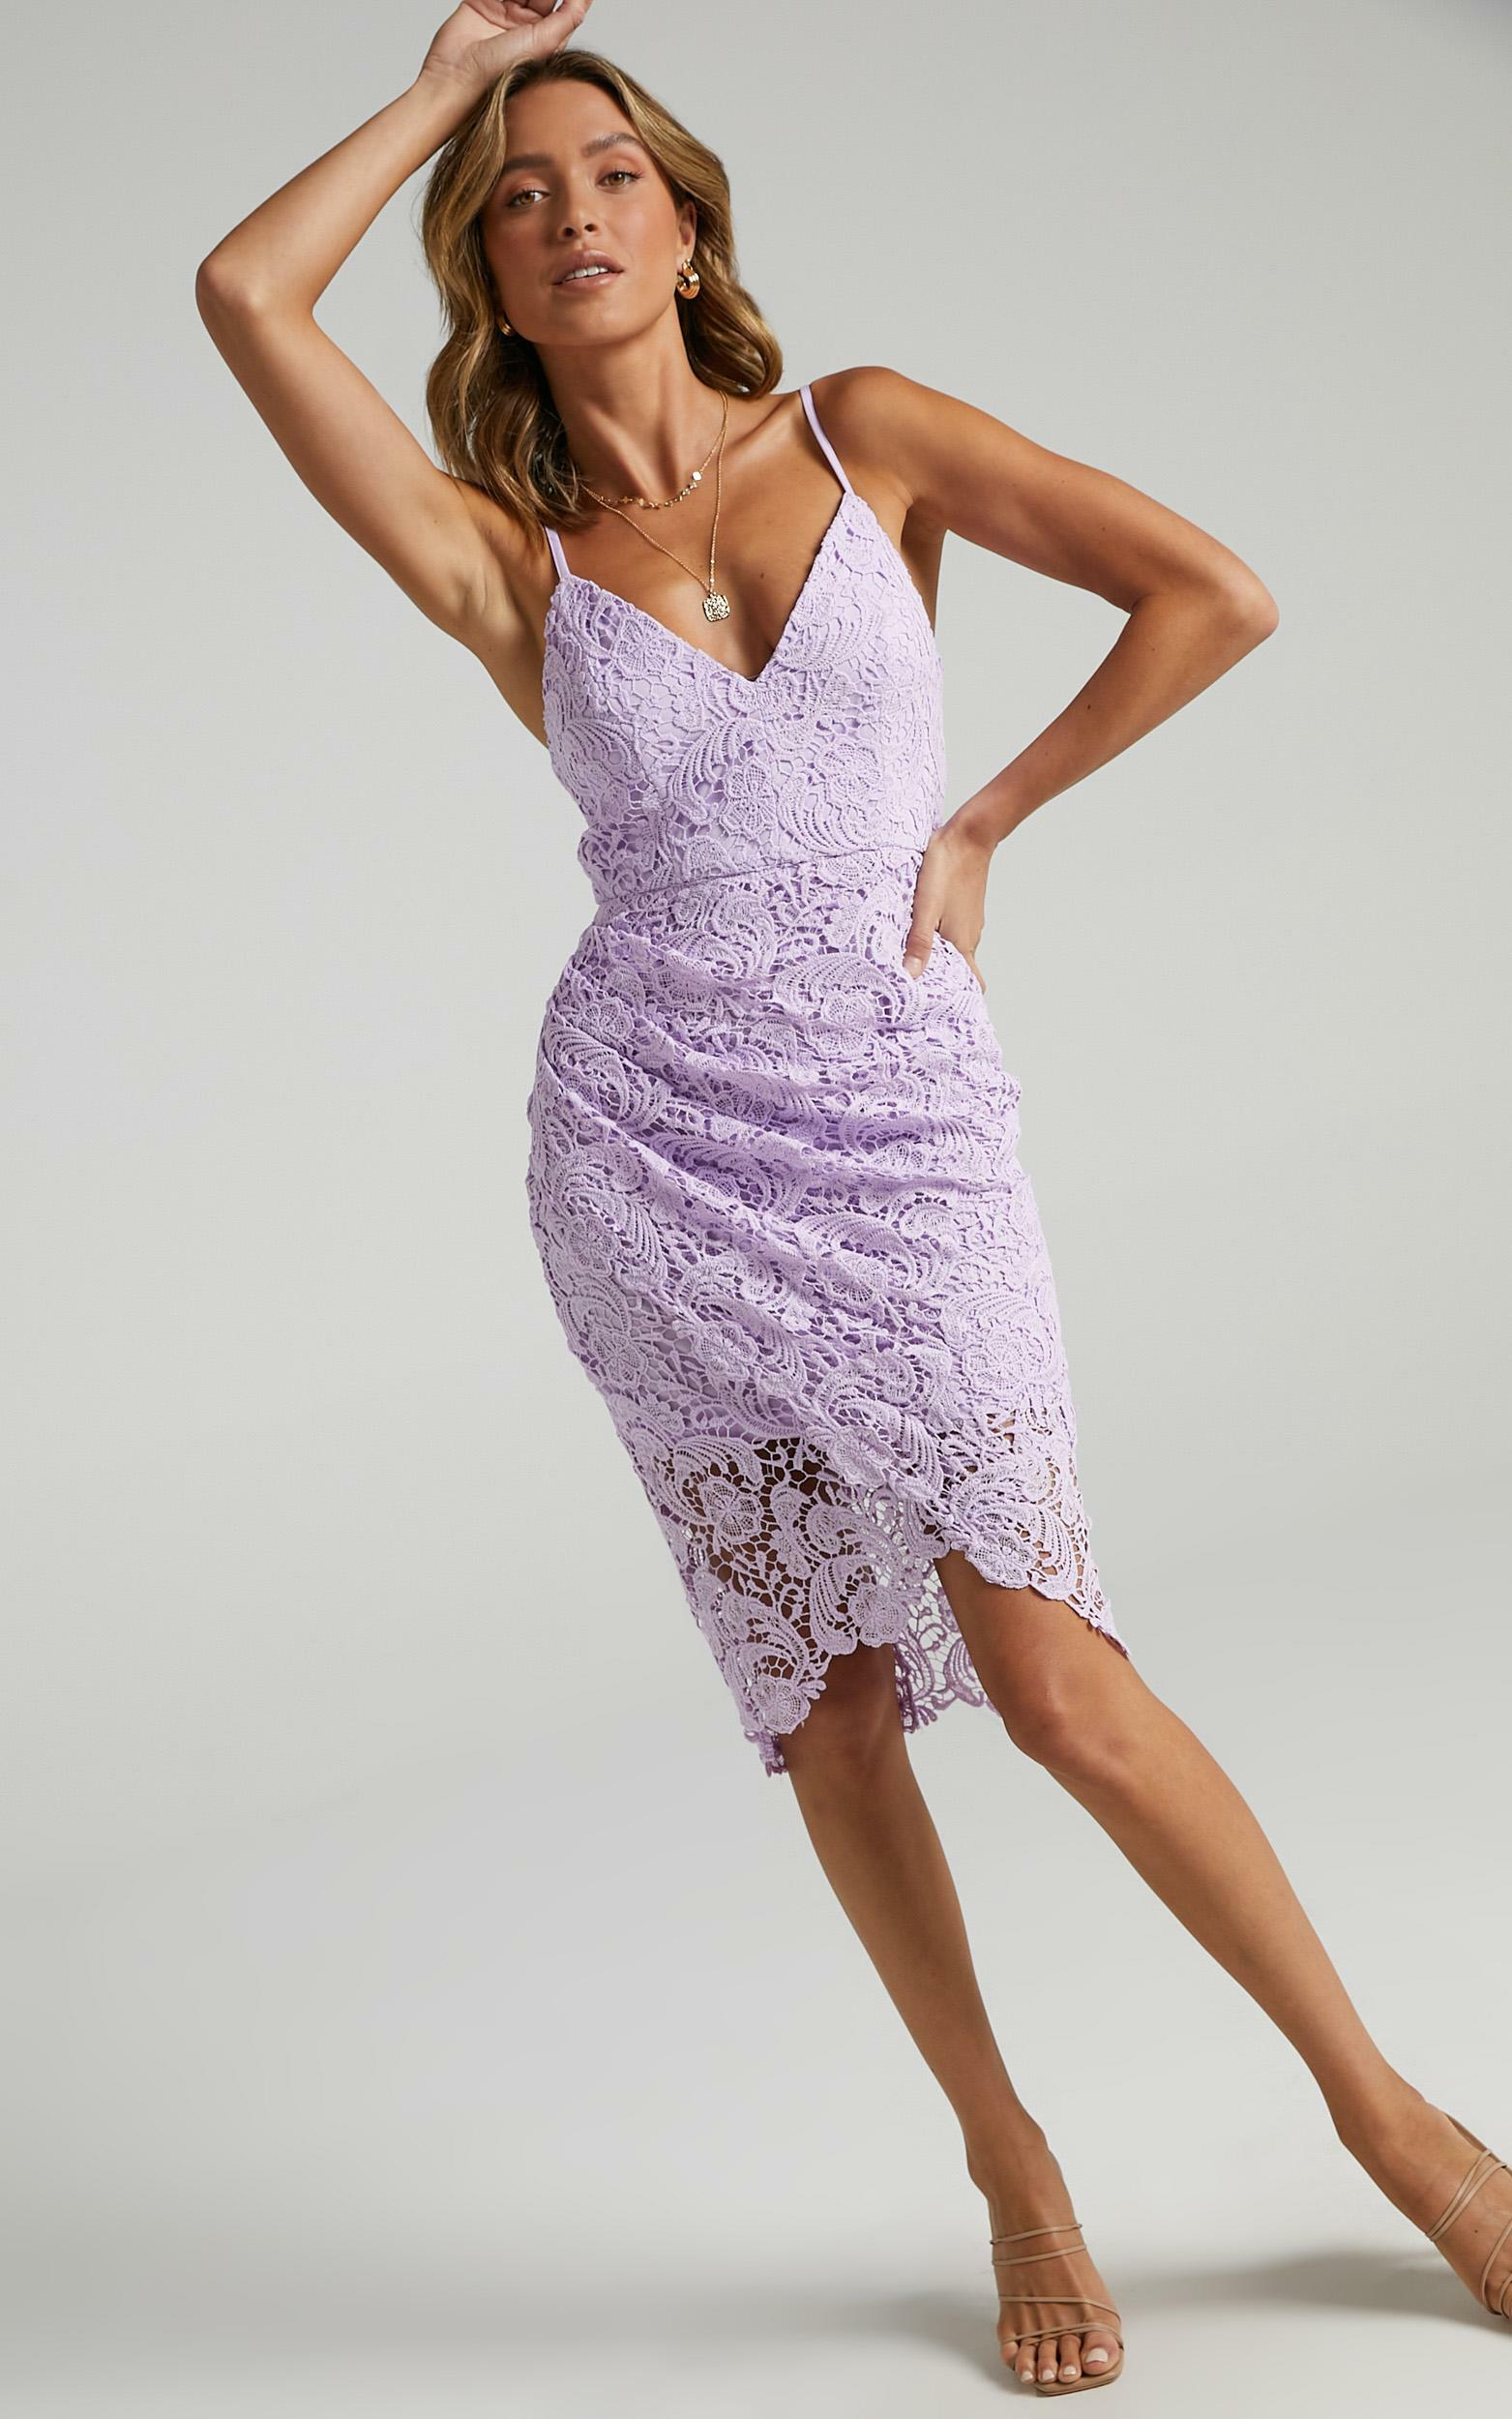 Typical Lover Dress In Lilac - 6 (XS), PRP3, hi-res image number null